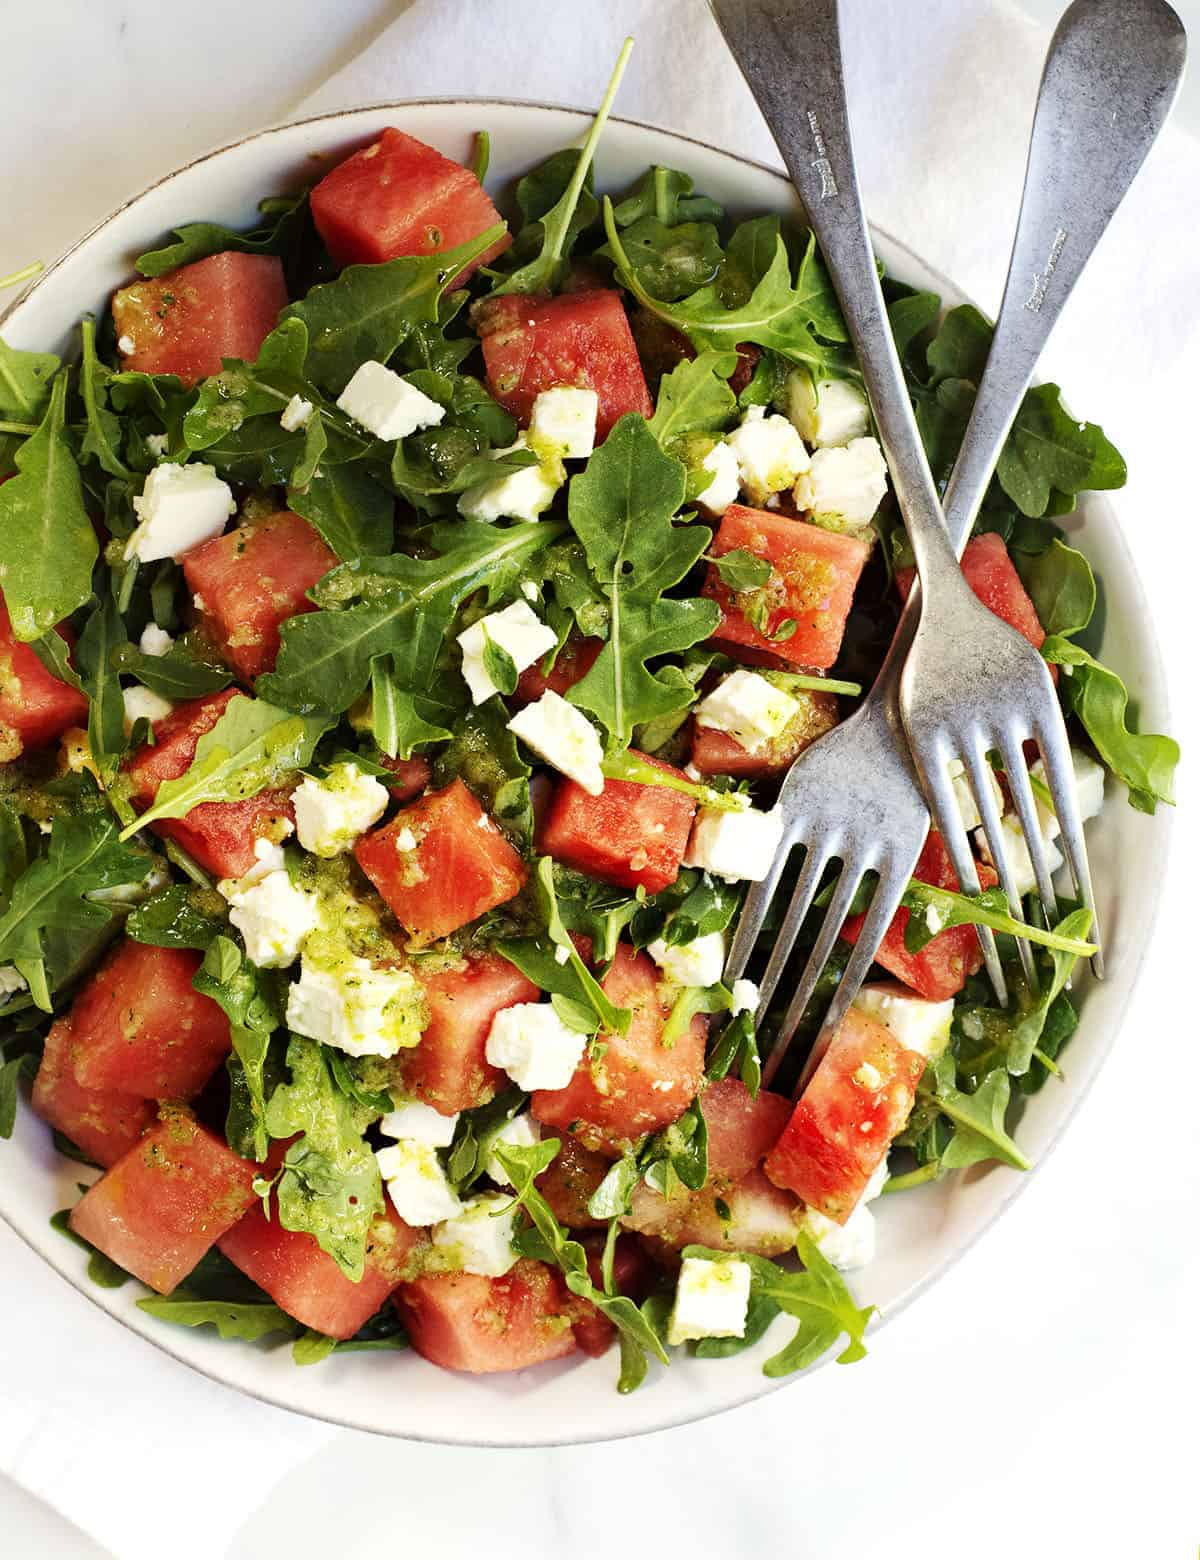 Watermelon and Arugula Salad with Feta Cheese in a ceramic bowl photographed from above